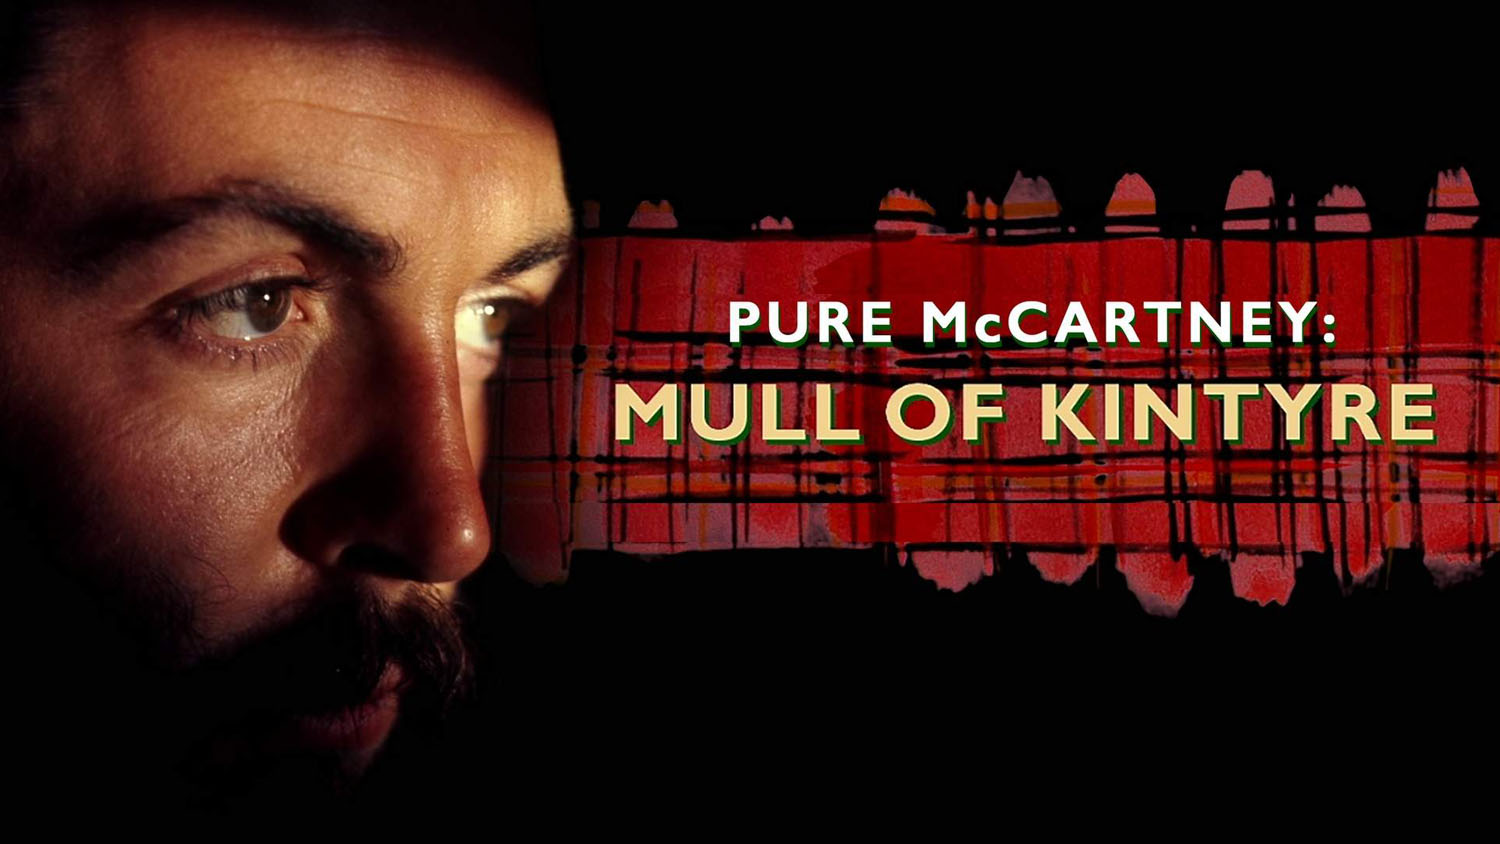 Pure McCartney - Mull of Kintyre